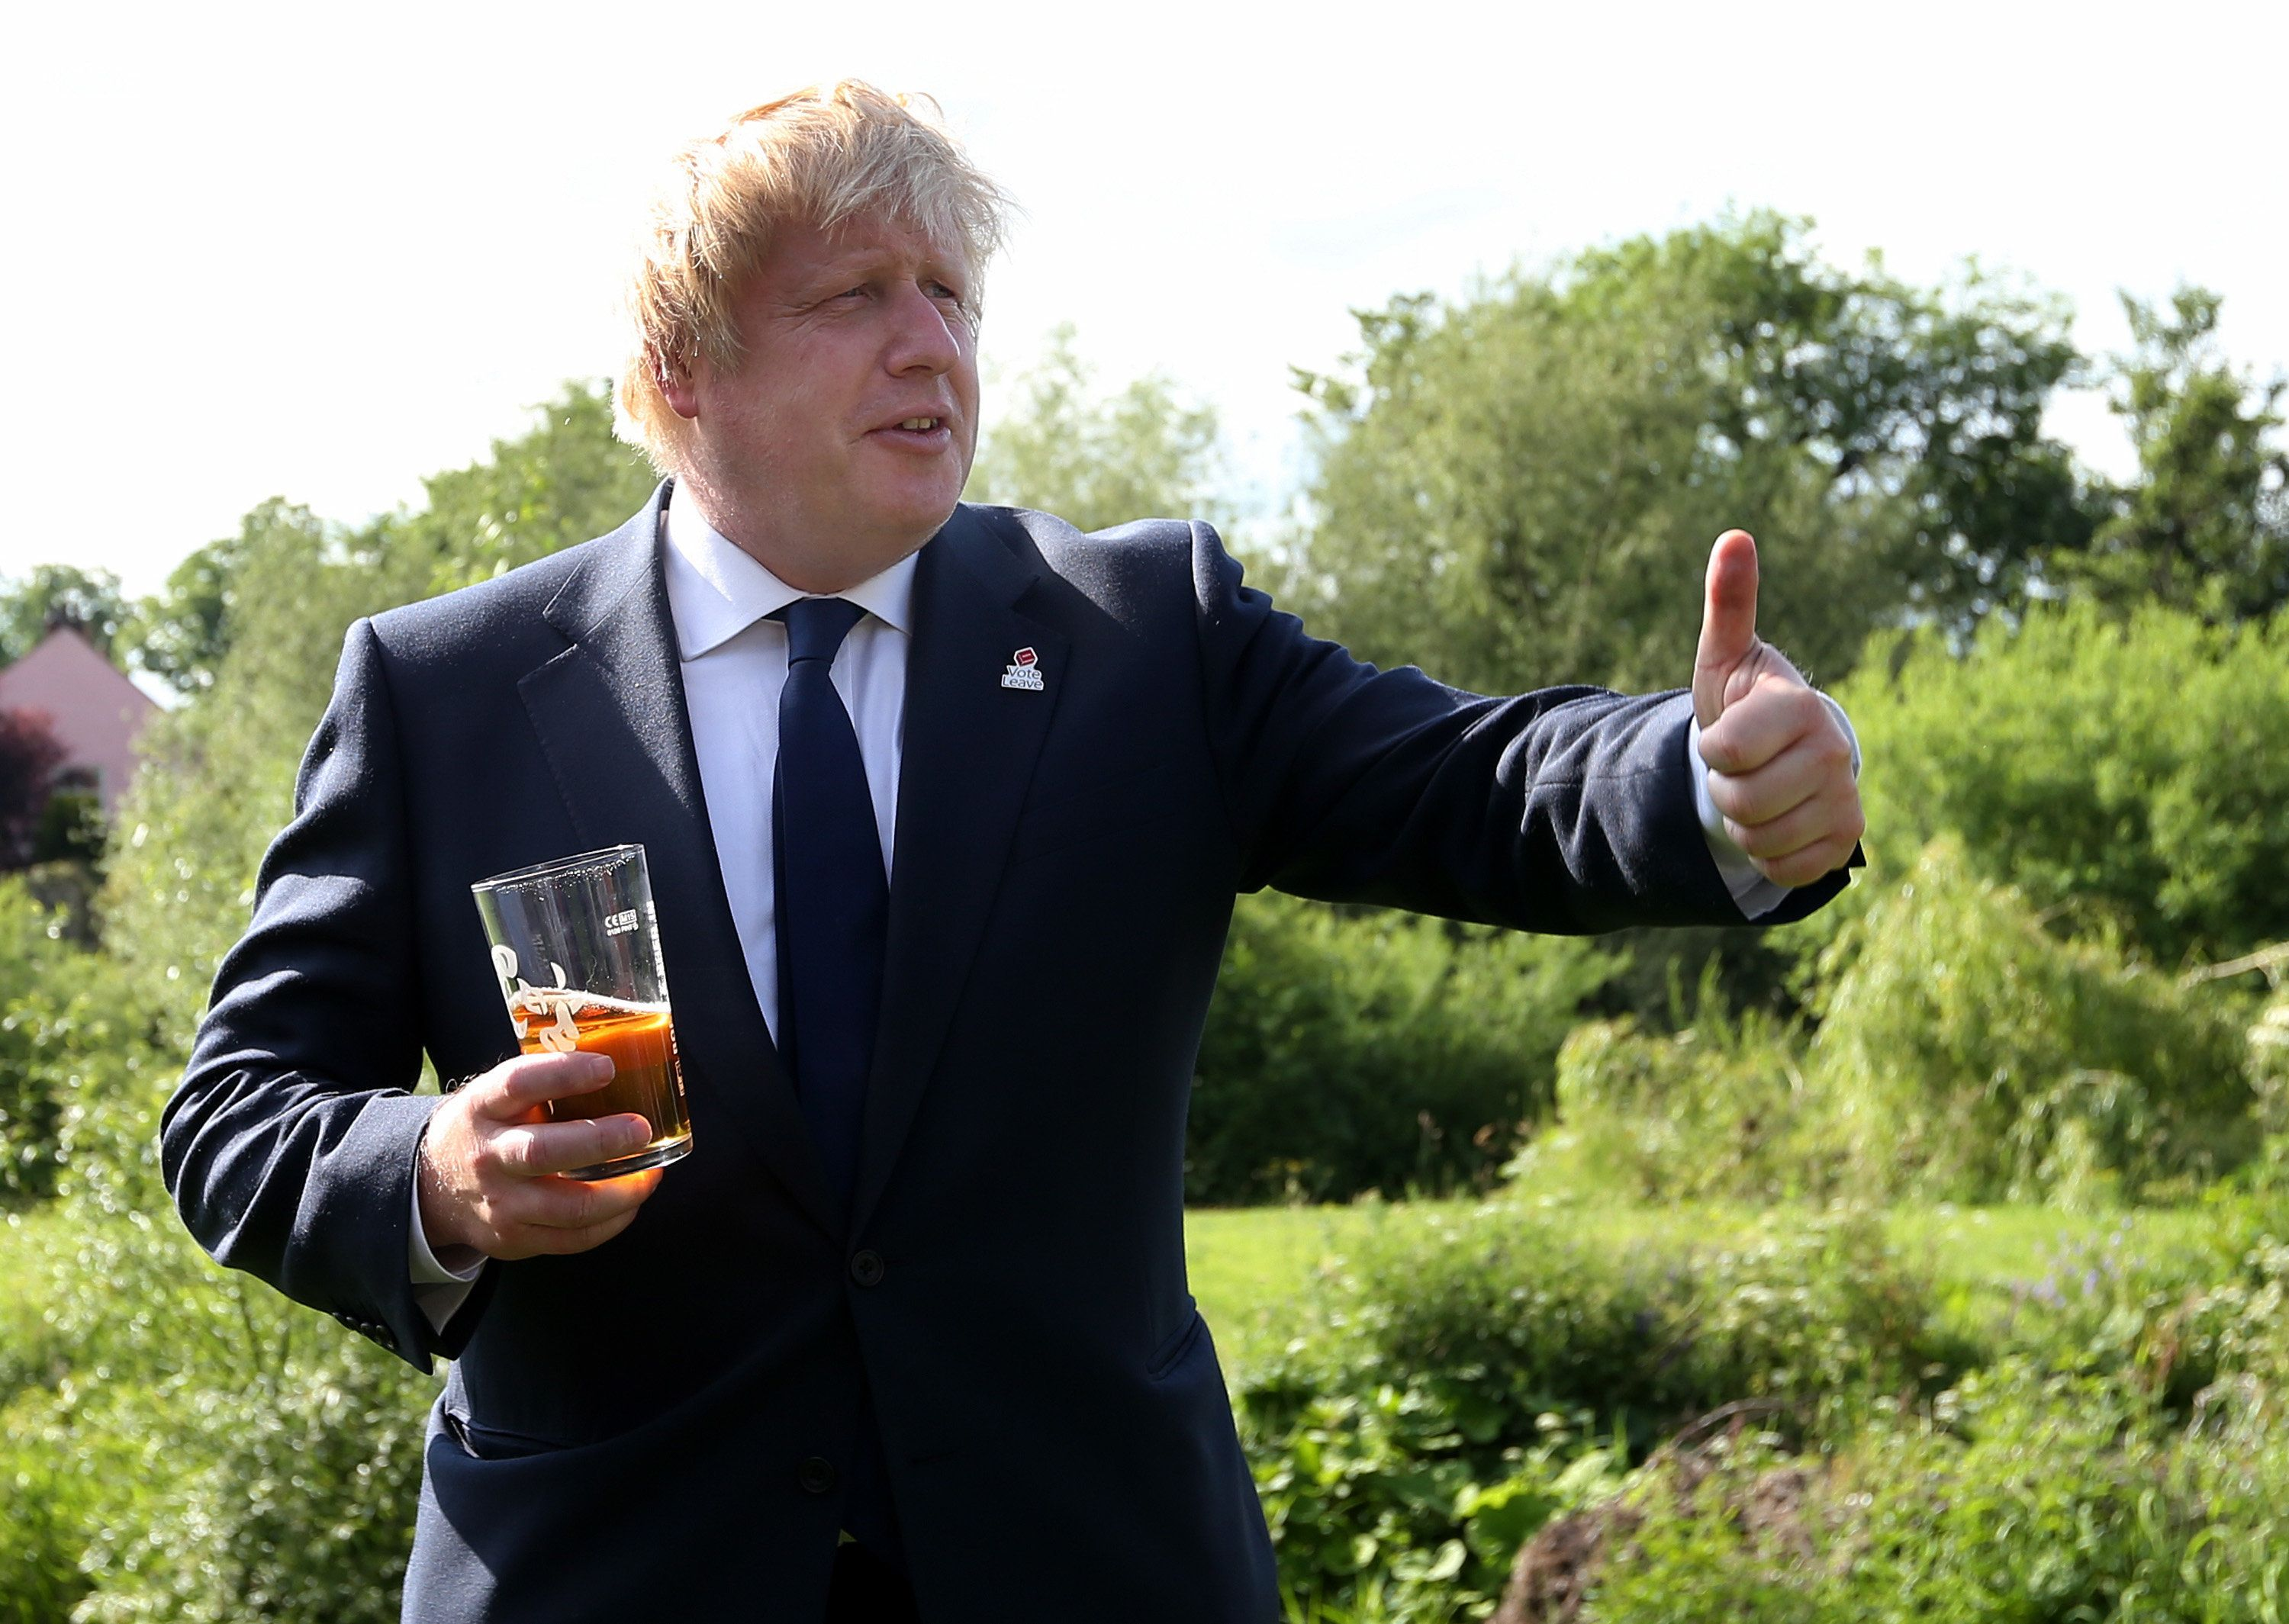 Boris Johnson will be kicking off the summer party season in